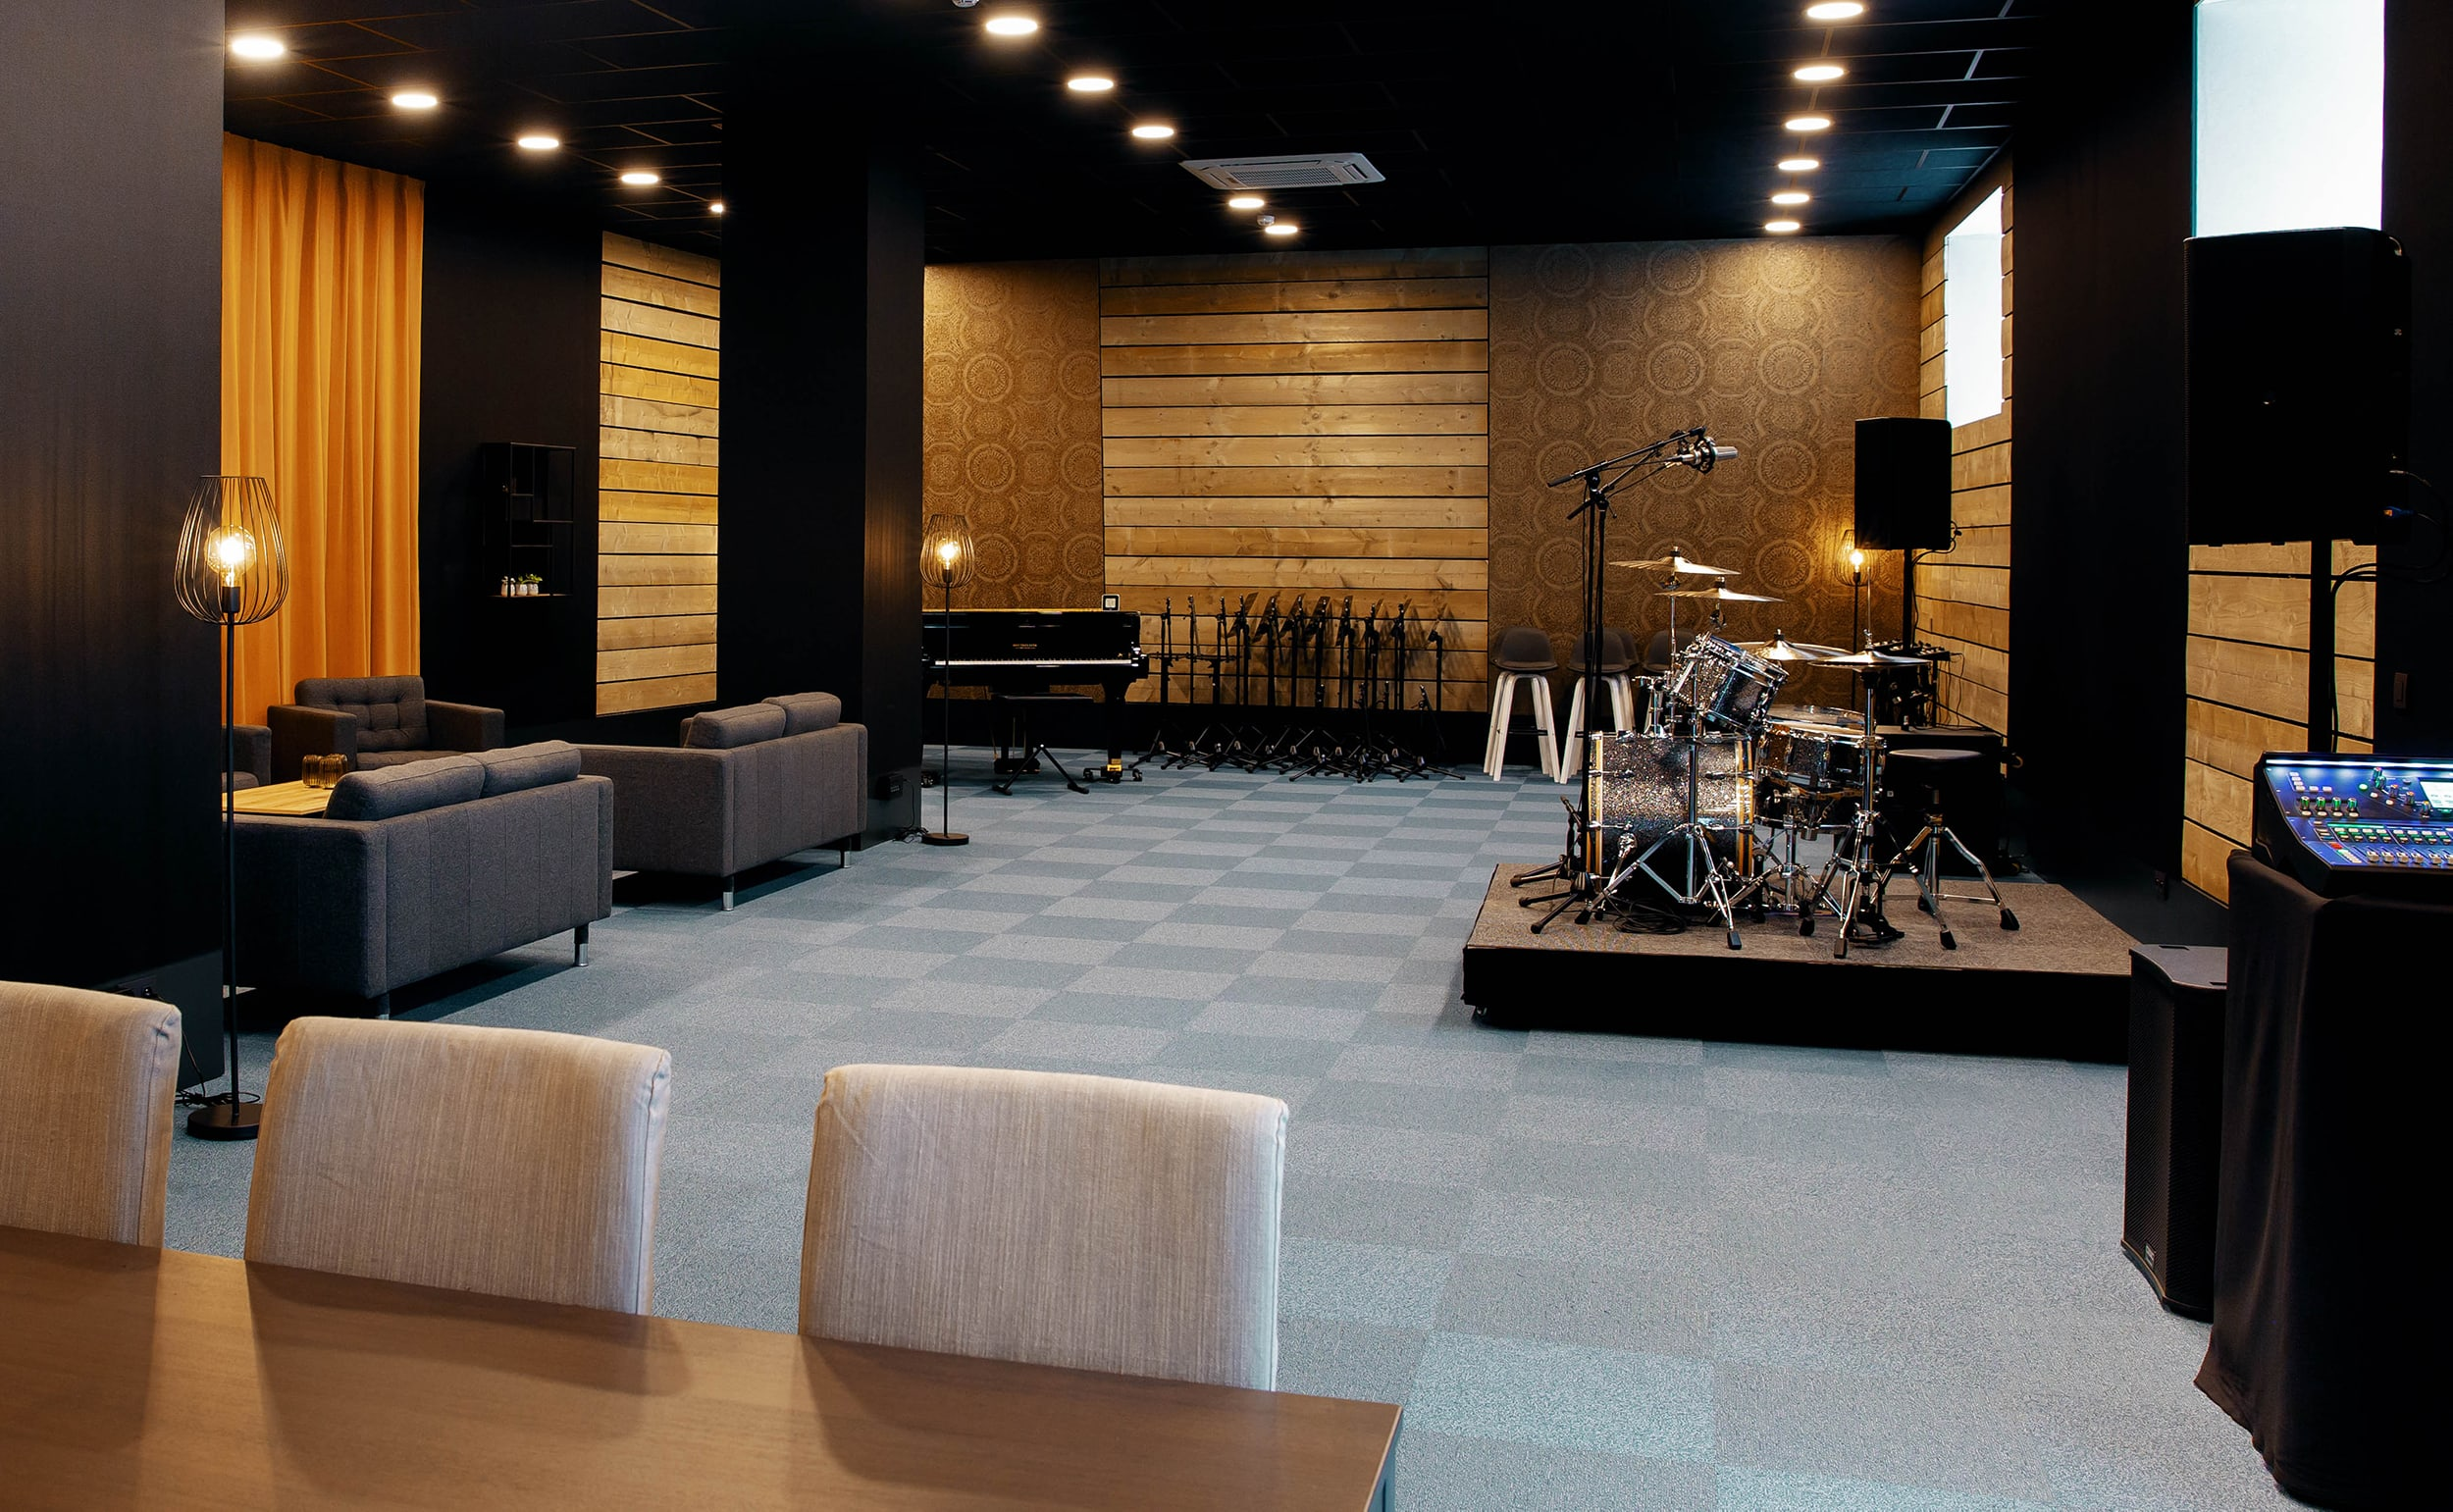 Allen & Heath Is The Primary Choice For Brand New High-End Rehearsal Studios Near Brussels 4